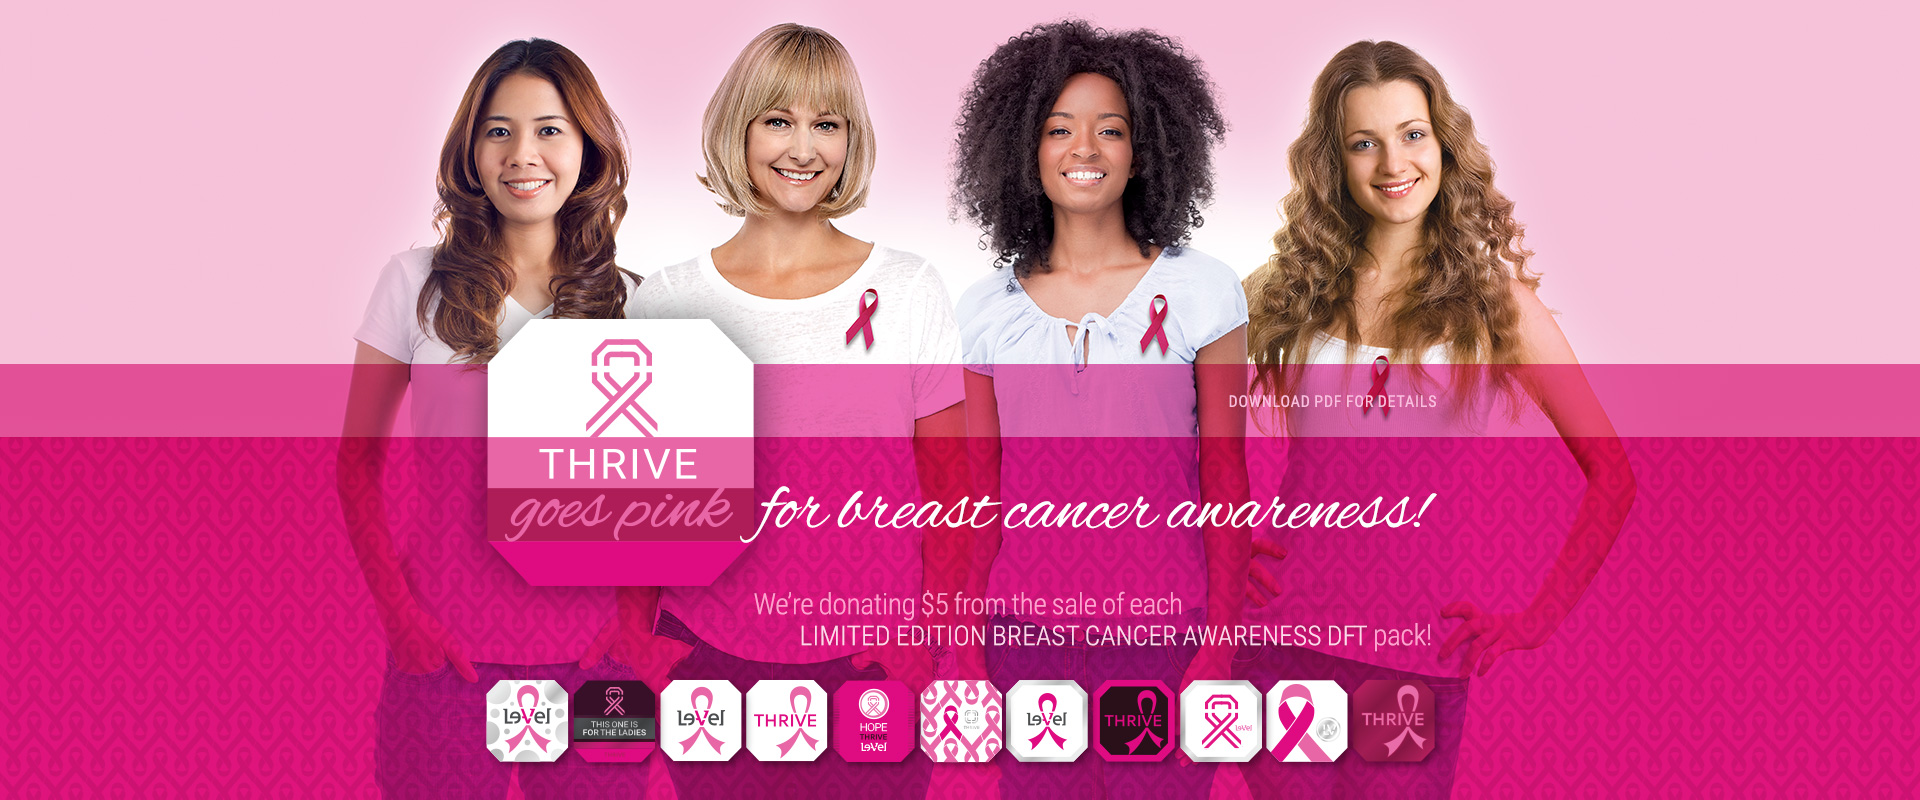 Thrive Goes Pink for Breast Cancer Awareness